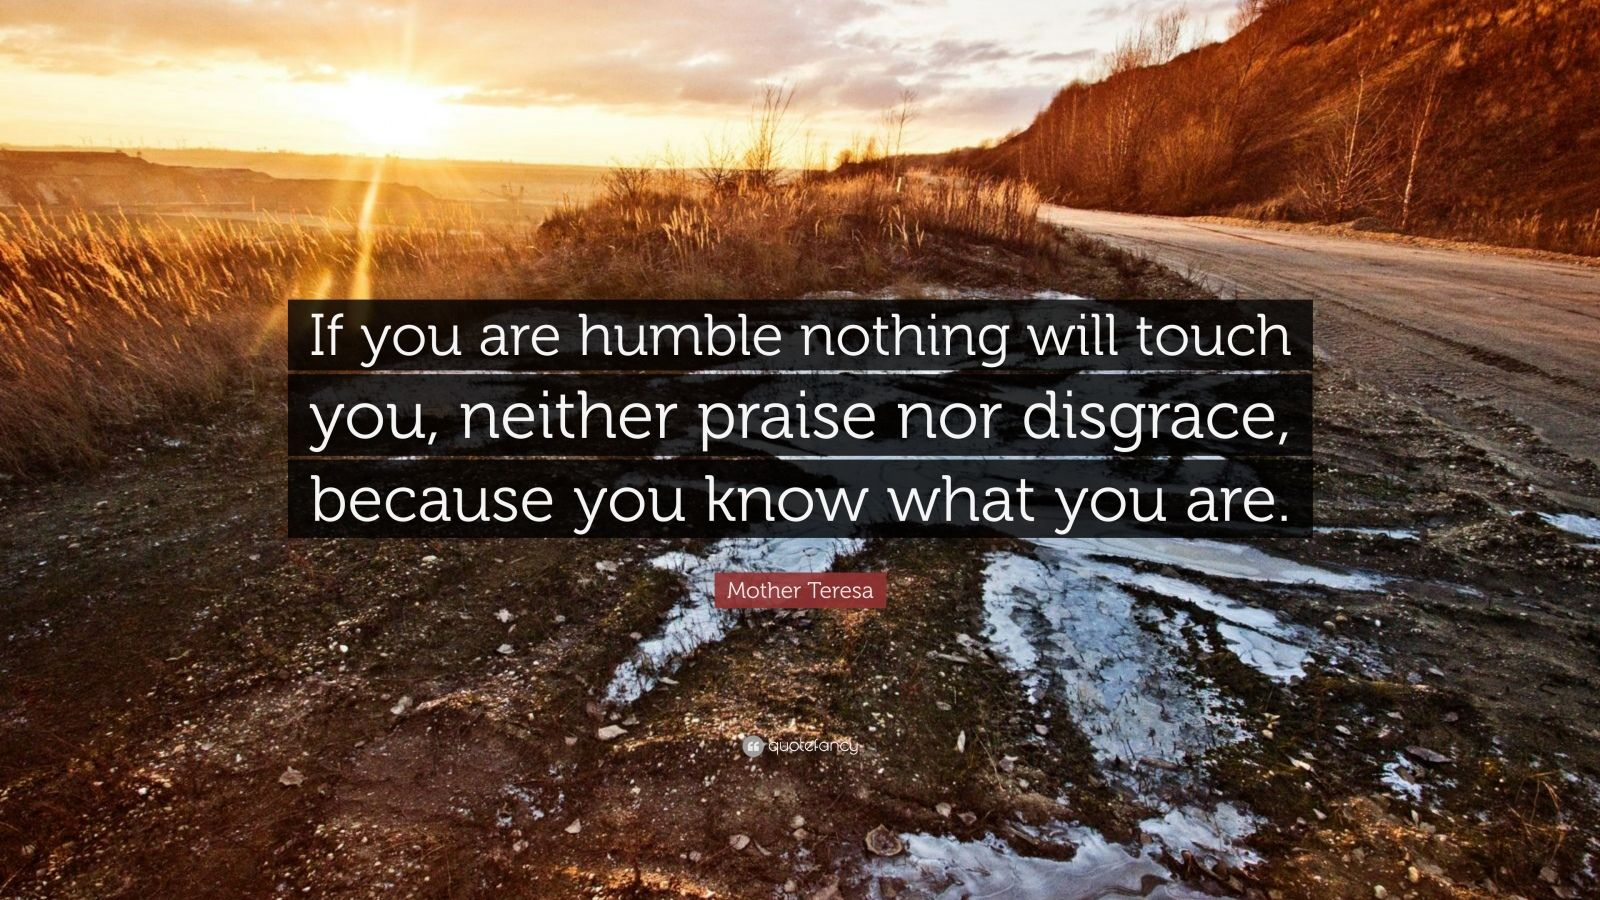 """Mother Teresa Quote: """"If you are humble nothing will touch you, neither praise nor disgrace, because you know what you are."""""""